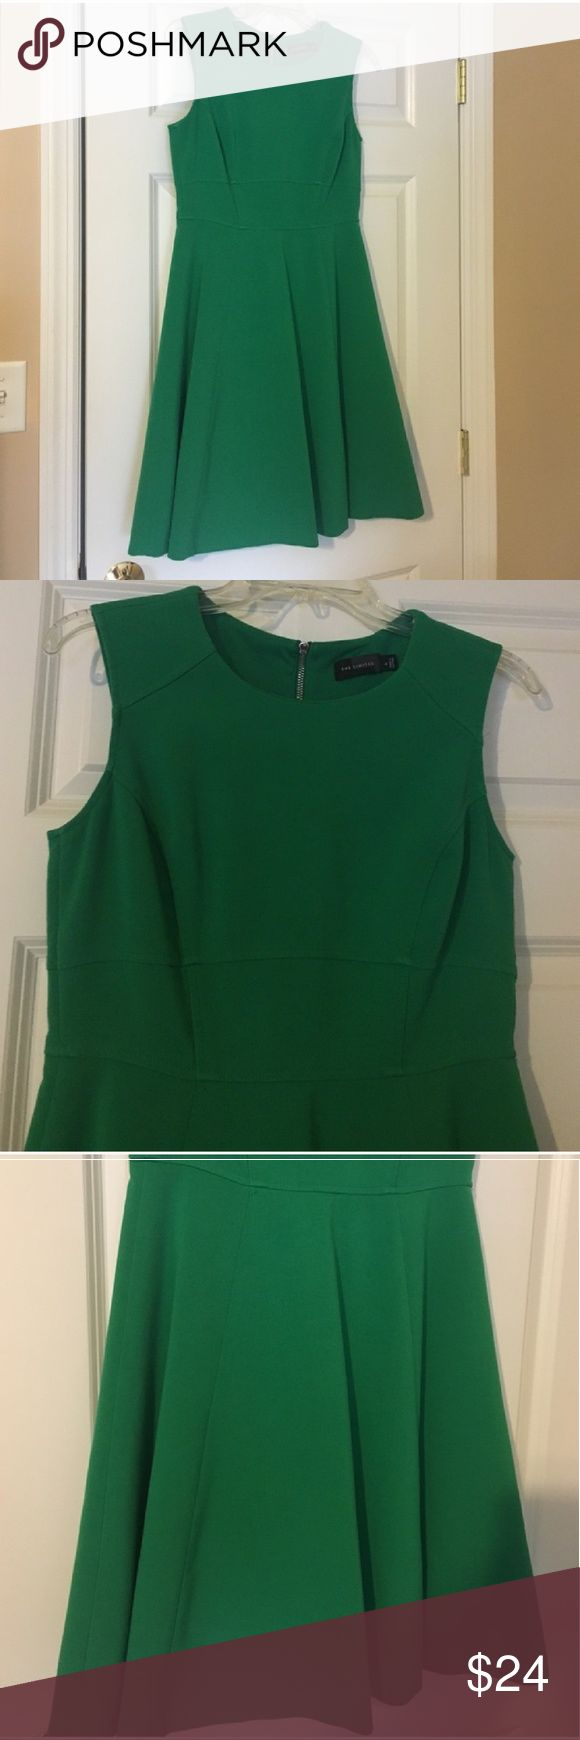 """Kelly Green Dress by The Limited 4 Small Knee Beautiful dress, I hate to part with it but it is just a bit too big. Size 4. Sleeveless and knee length.   Total length 35-1/2""""  Used to work in an office and now I work from home. Listing lots so being brief but I answer questions promptly! :) The Limited Dresses Midi"""